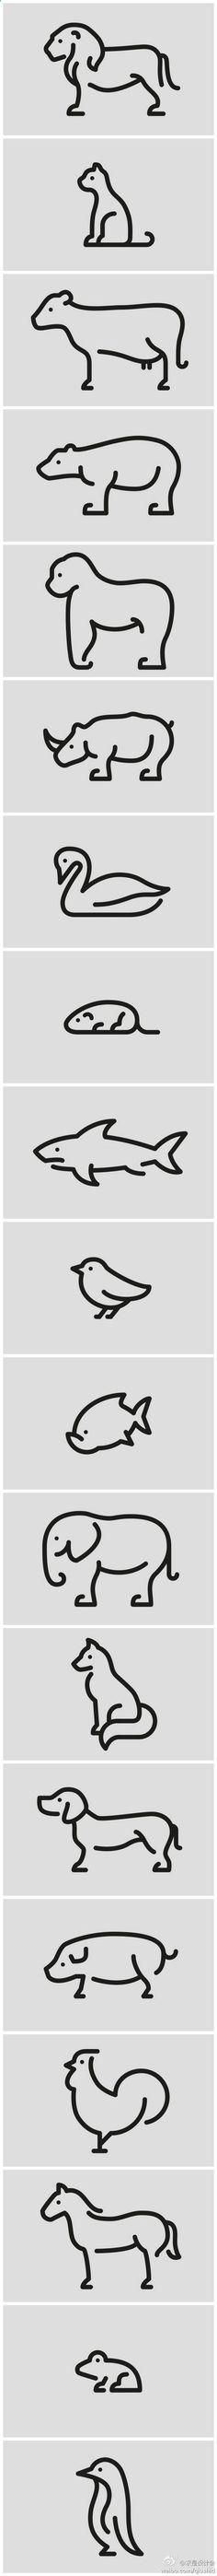 Easy to draw animals.